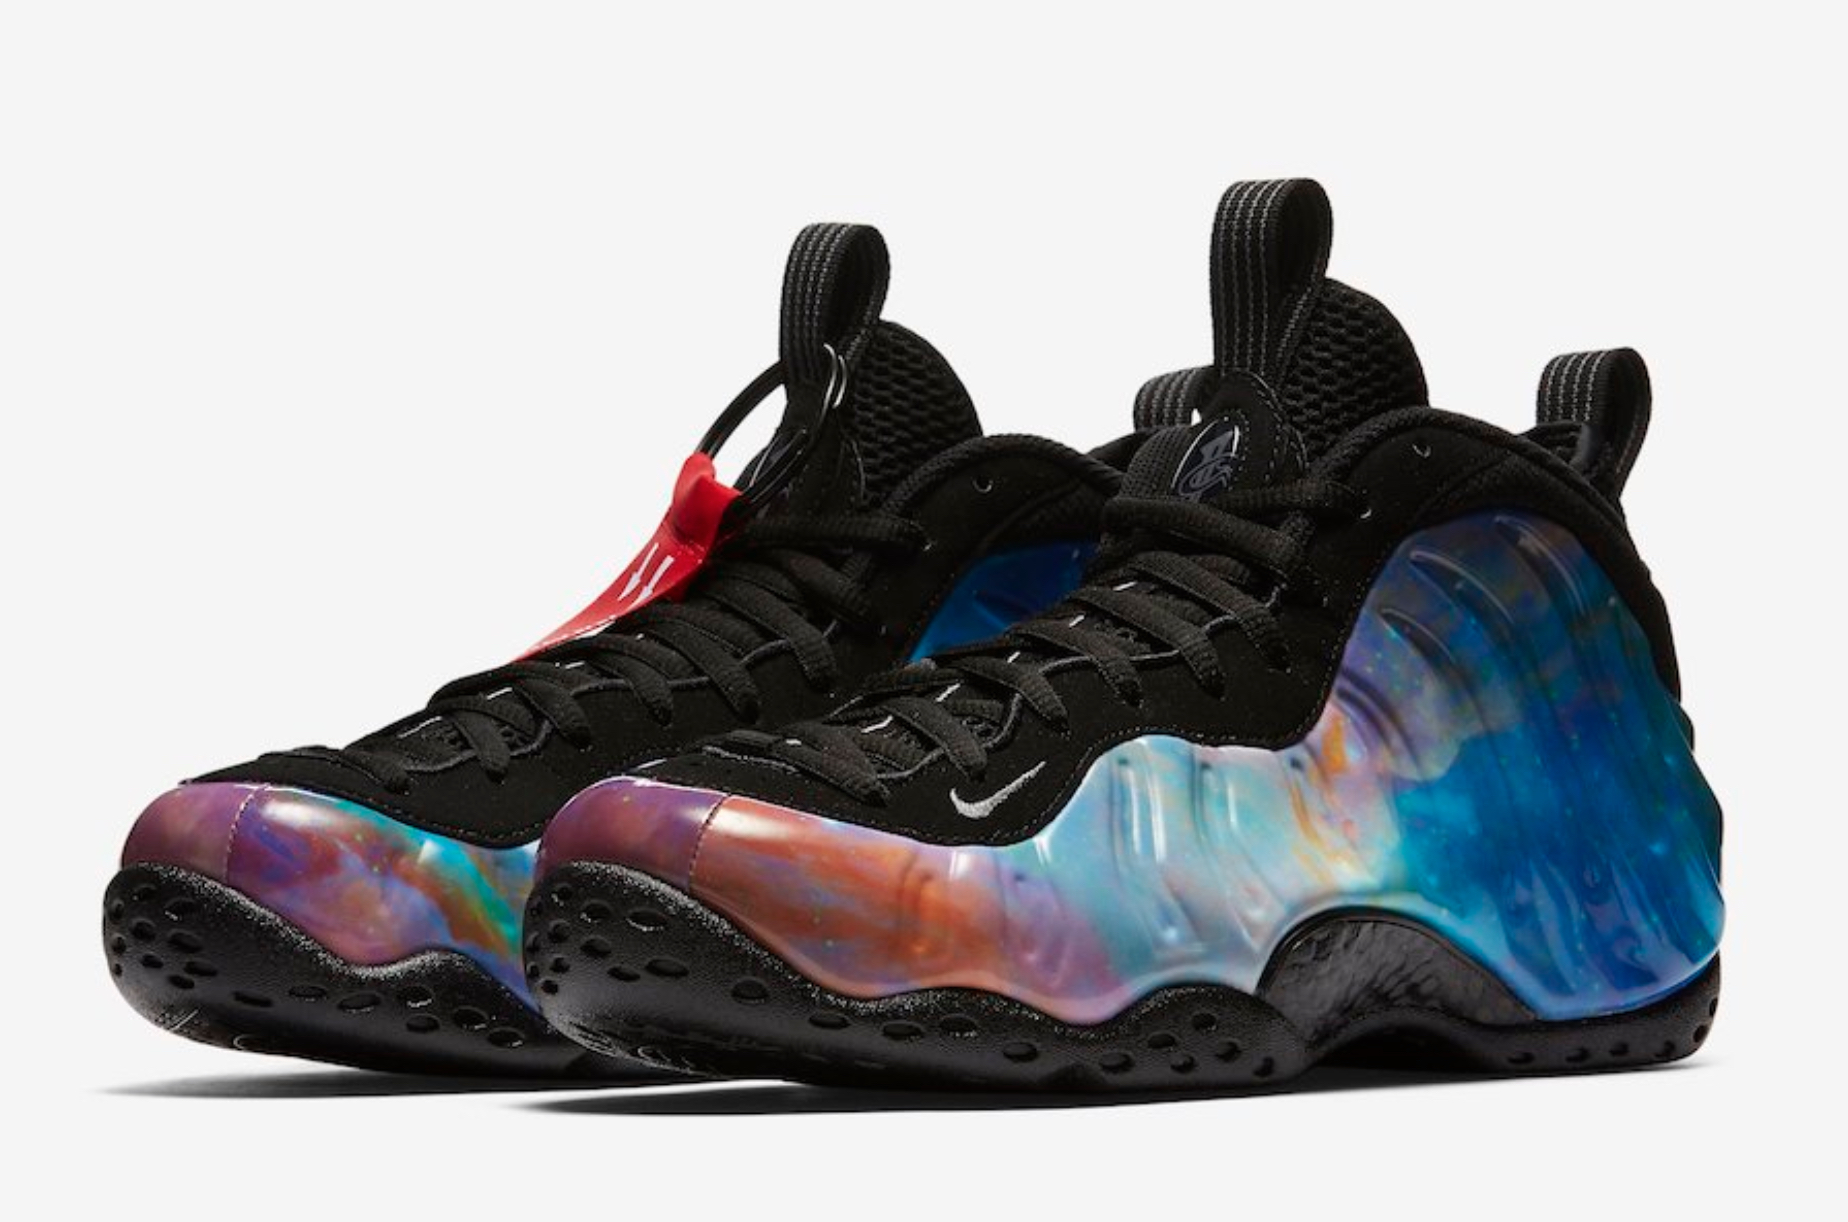 The Nike Air Foamposite One Big Bang Is Dropping